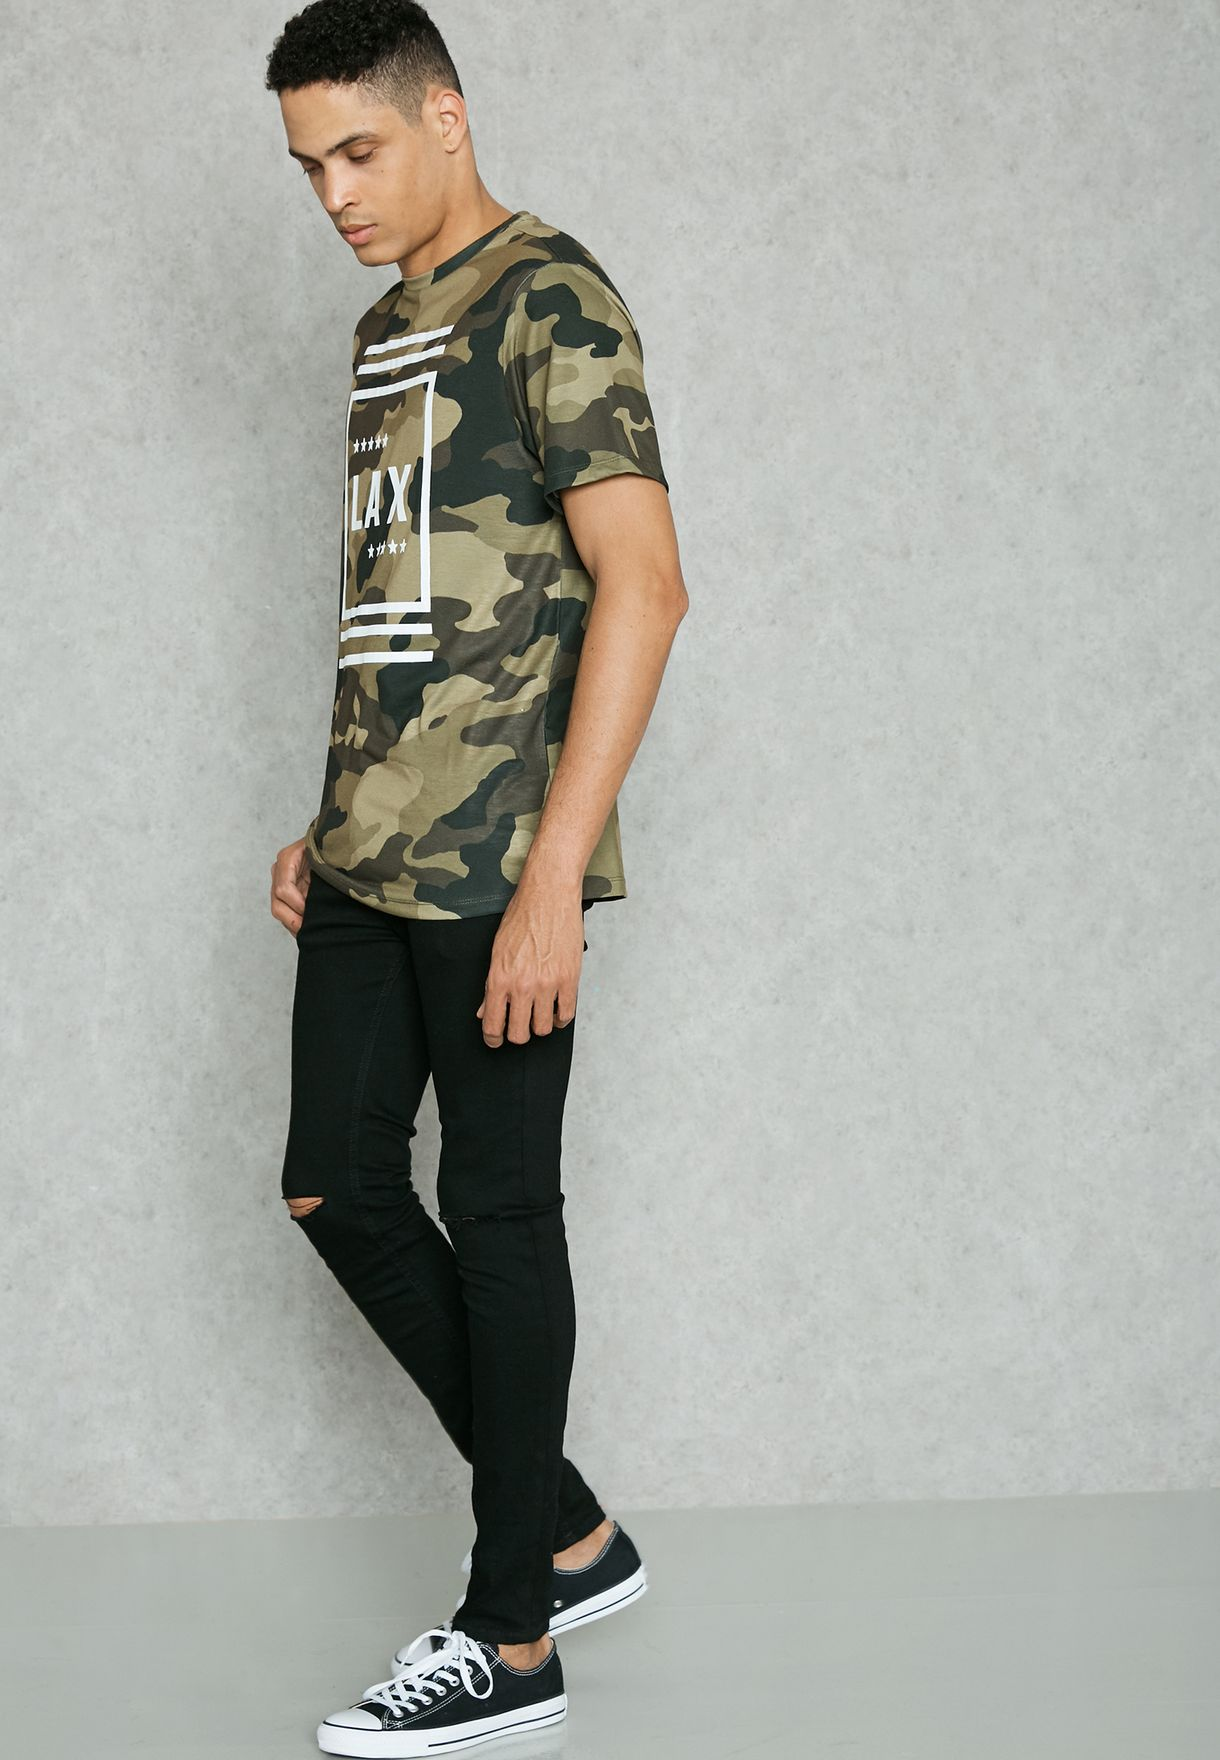 LAX Camo Crew Neck T-Shirt